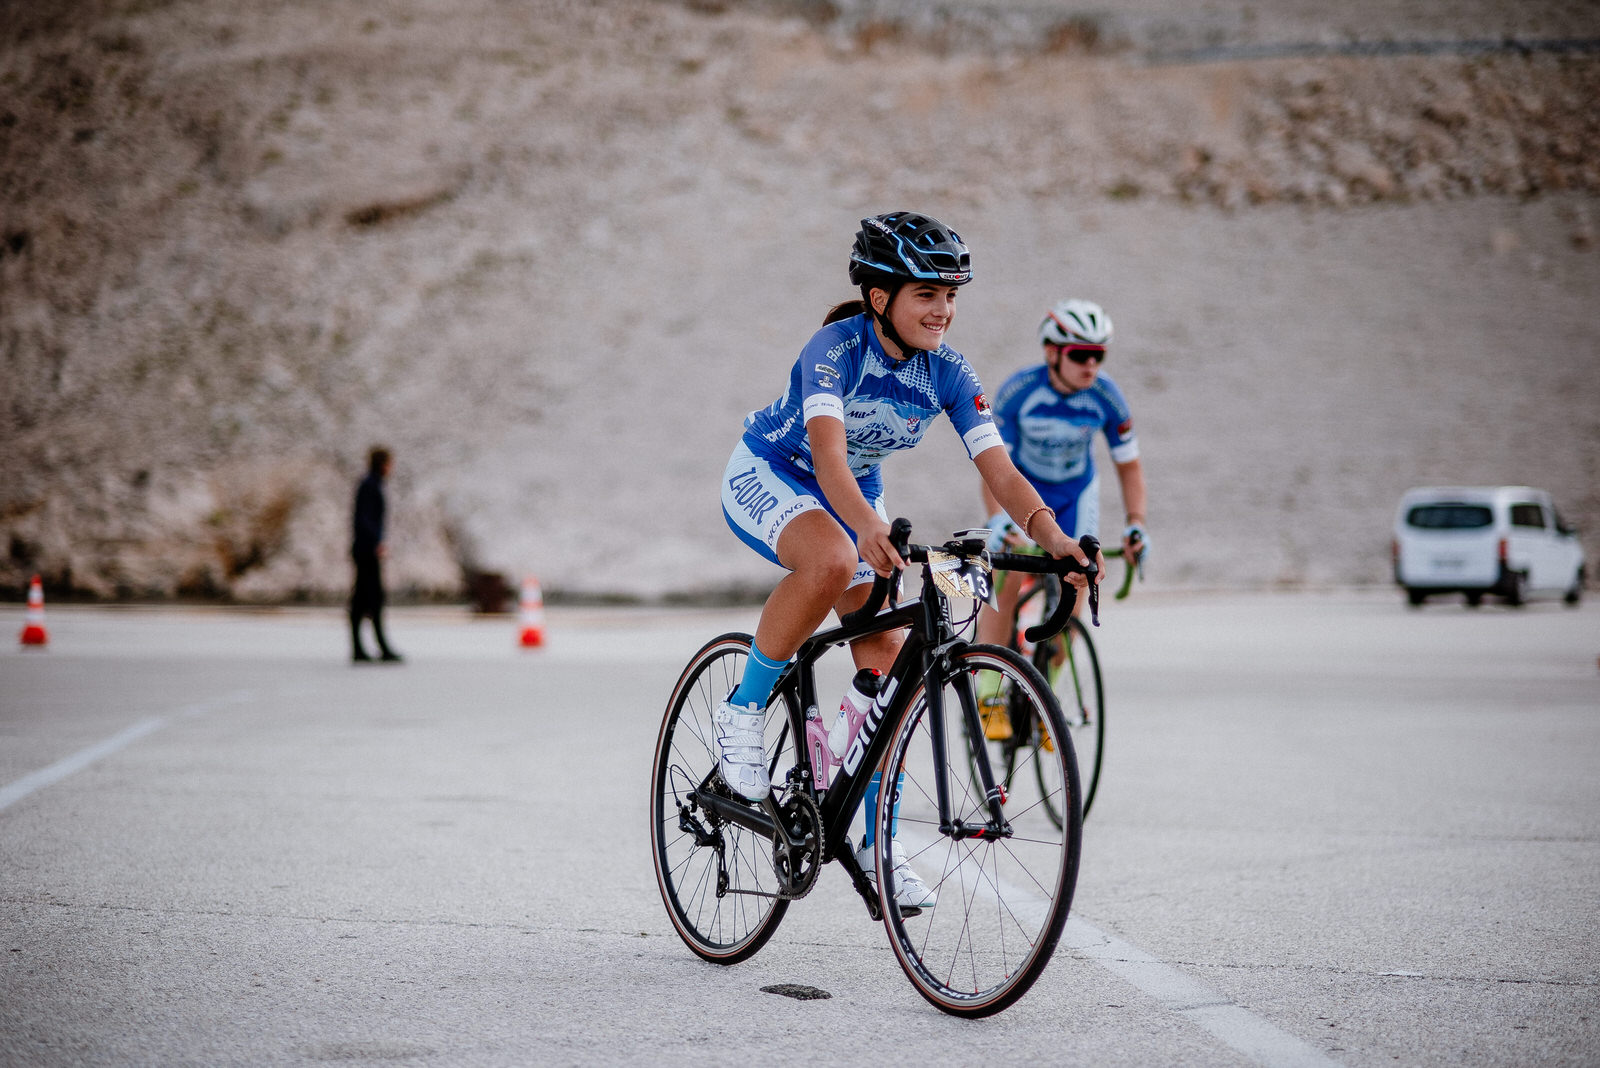 likaclub_Granfondo-Pag-–-Cycling-on-the-Moon_2019-36